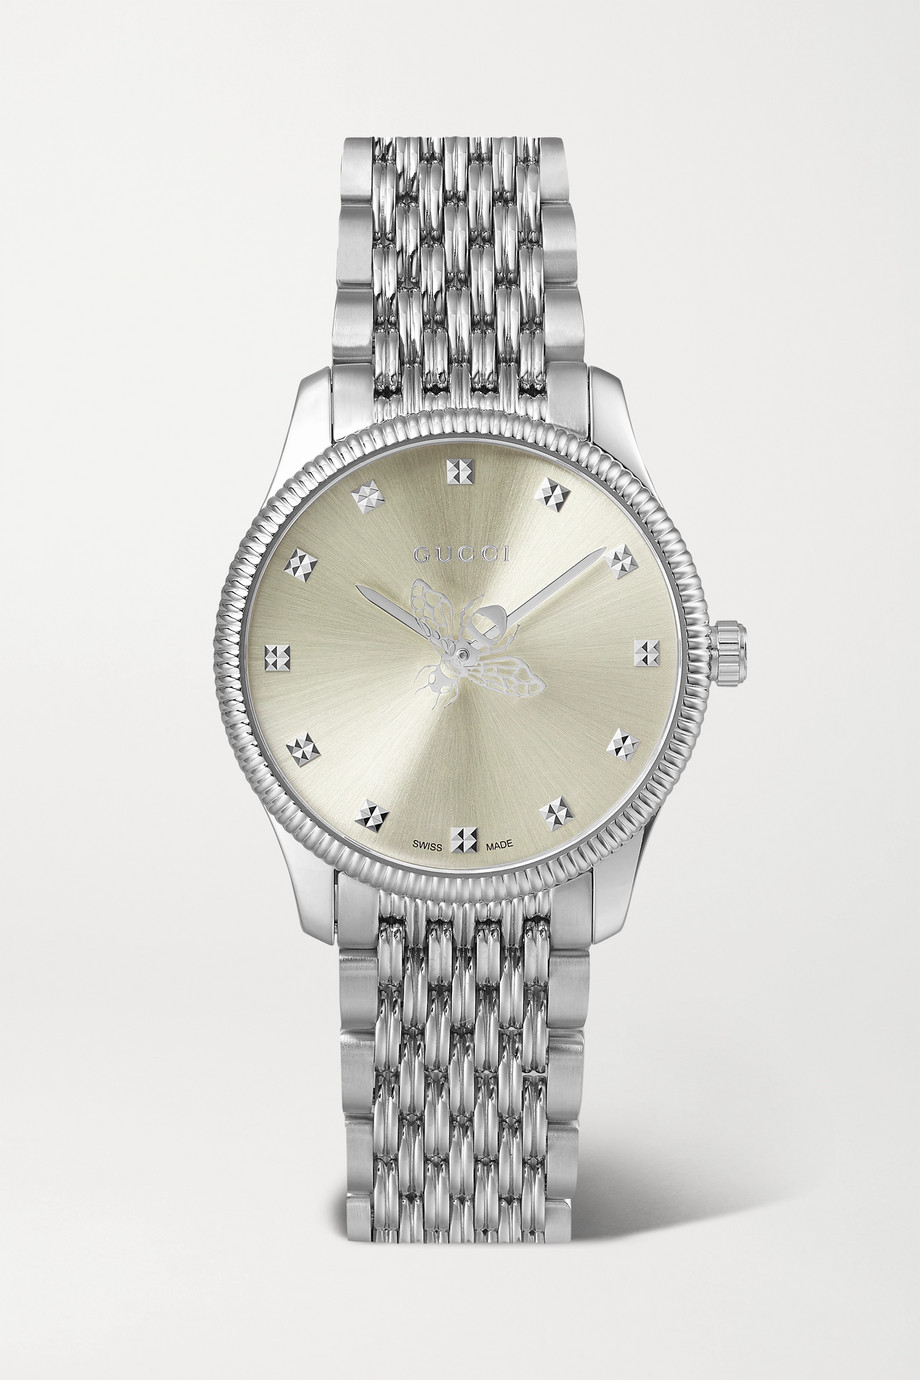 GUCCI G-Timeless 29mm stainless steel watch